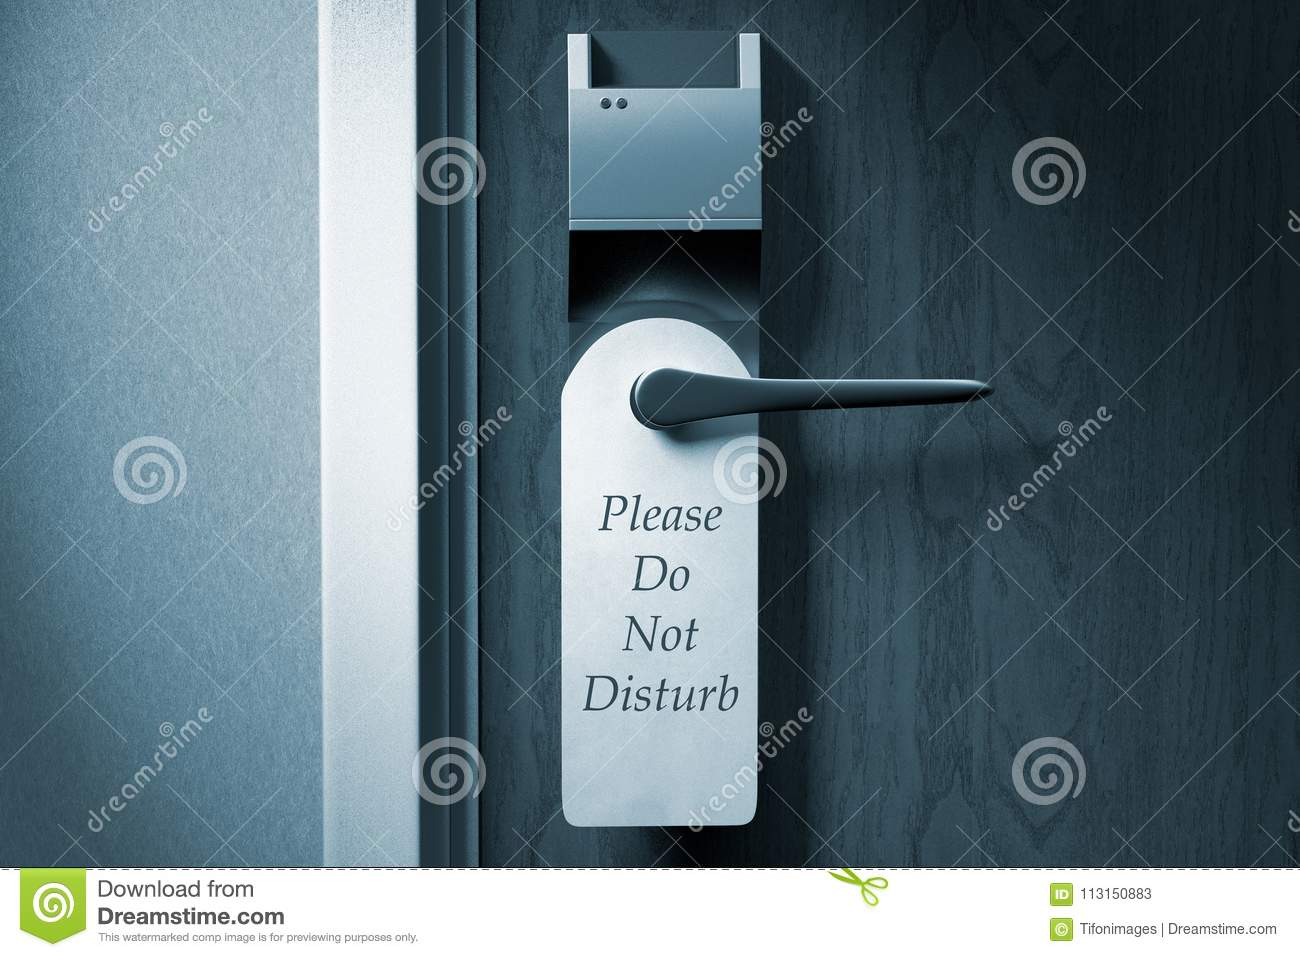 Download A Knob Of A Hotel Door With `Please Do Not Disturb` Tag Stock Image - Image of photograph, image: 113150883